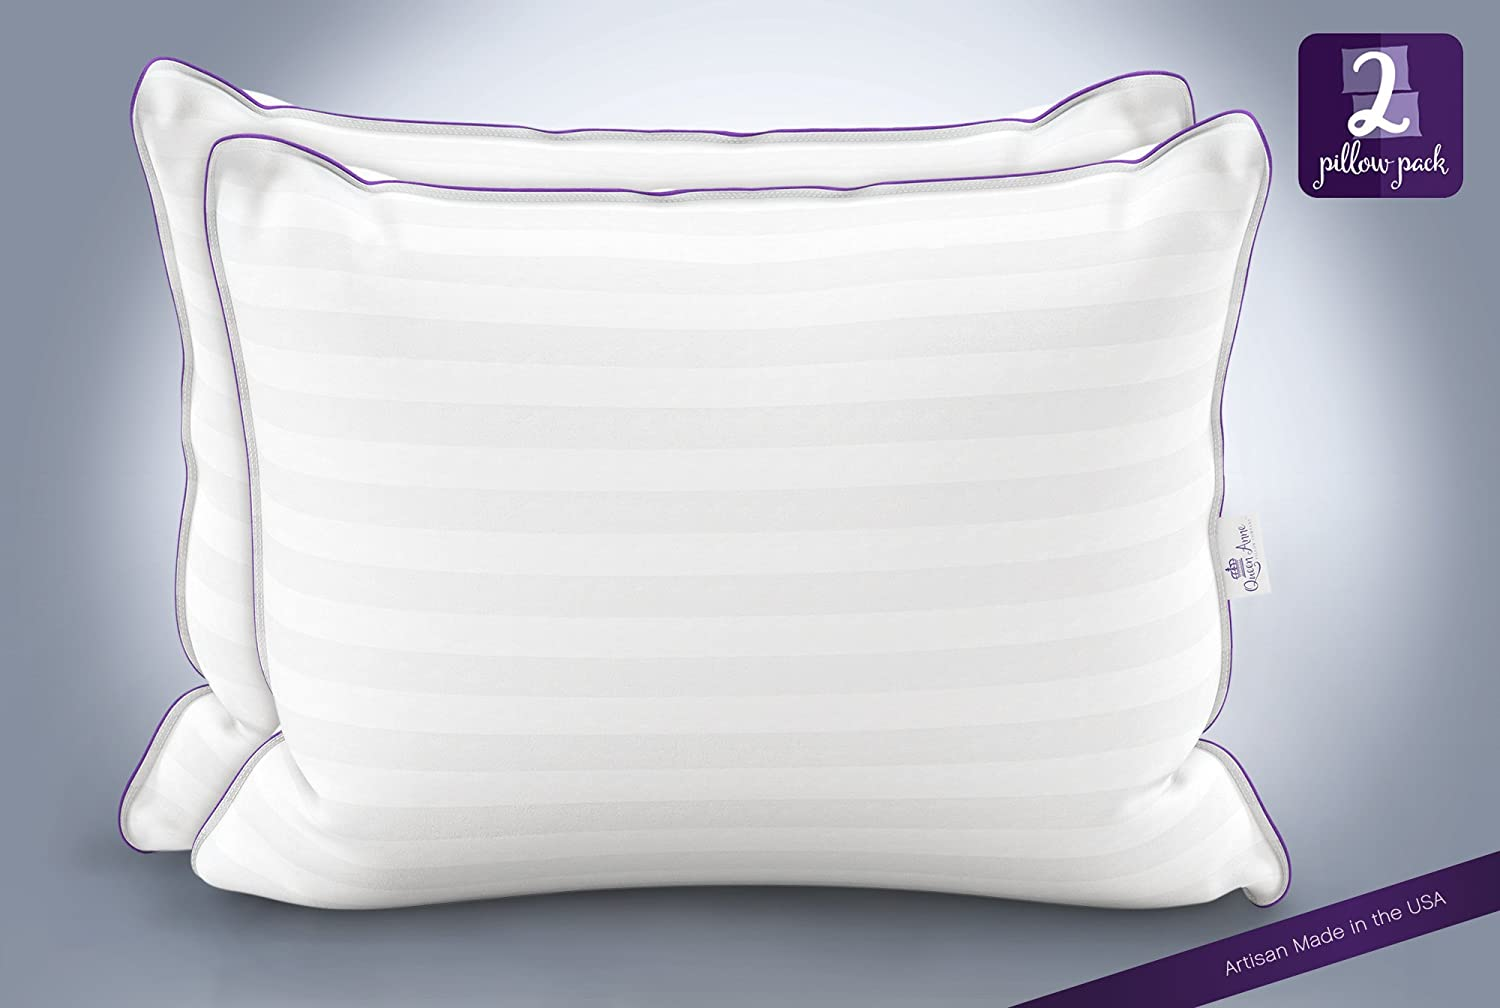 2 Luxury Hotel Pillows – Hand Crafted- Sleep on the Comfort of Down Alternative with Queen Anne's Exclusive Heavenly Down Hypoallergenic Pillow Set - Made in USA (Queen Size, Medium Fill)